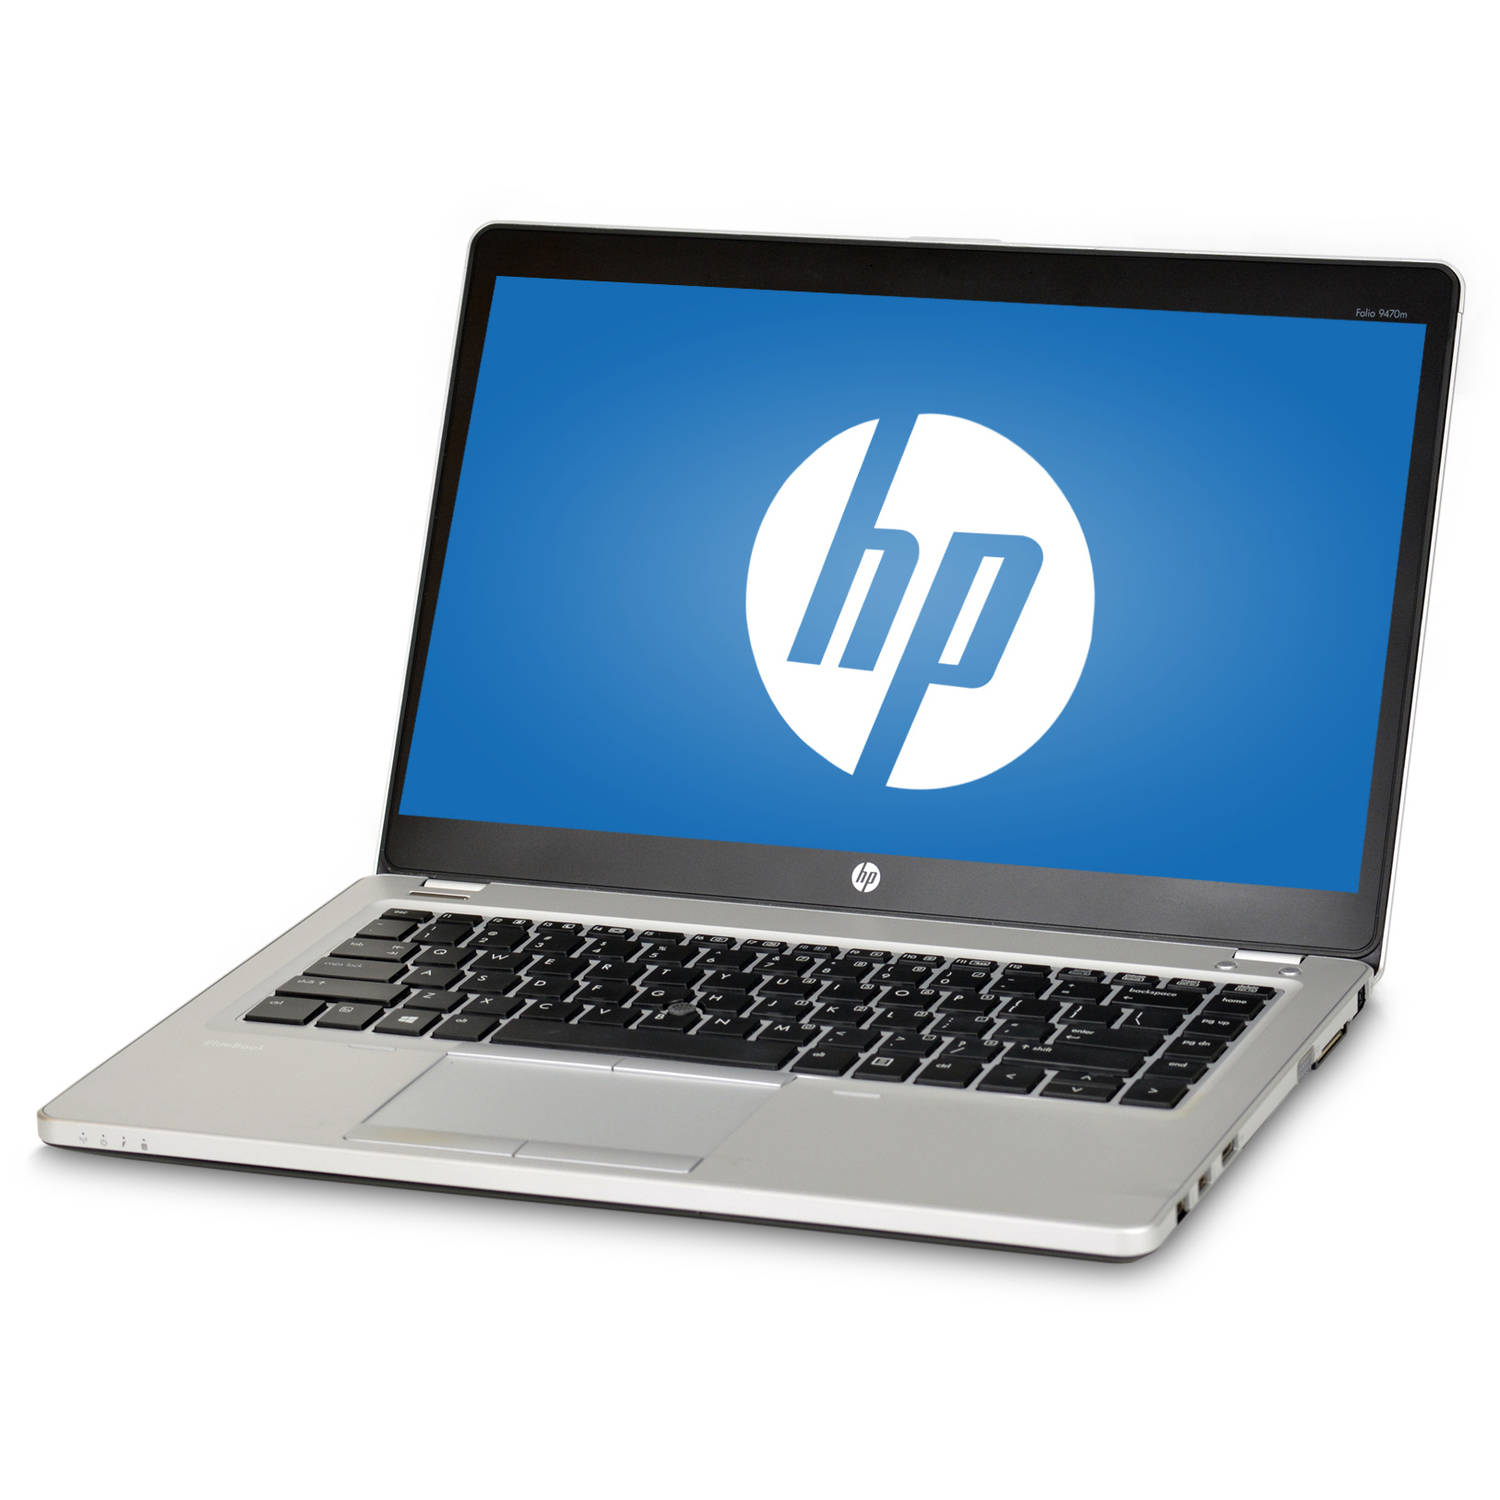 Refurbished HP EliteBook Folio 9470M 14 Laptop, Windows 10 Pro, Intel Core i7 - 3667U Processor, 8GB RAM, 240GB Solid State Drive